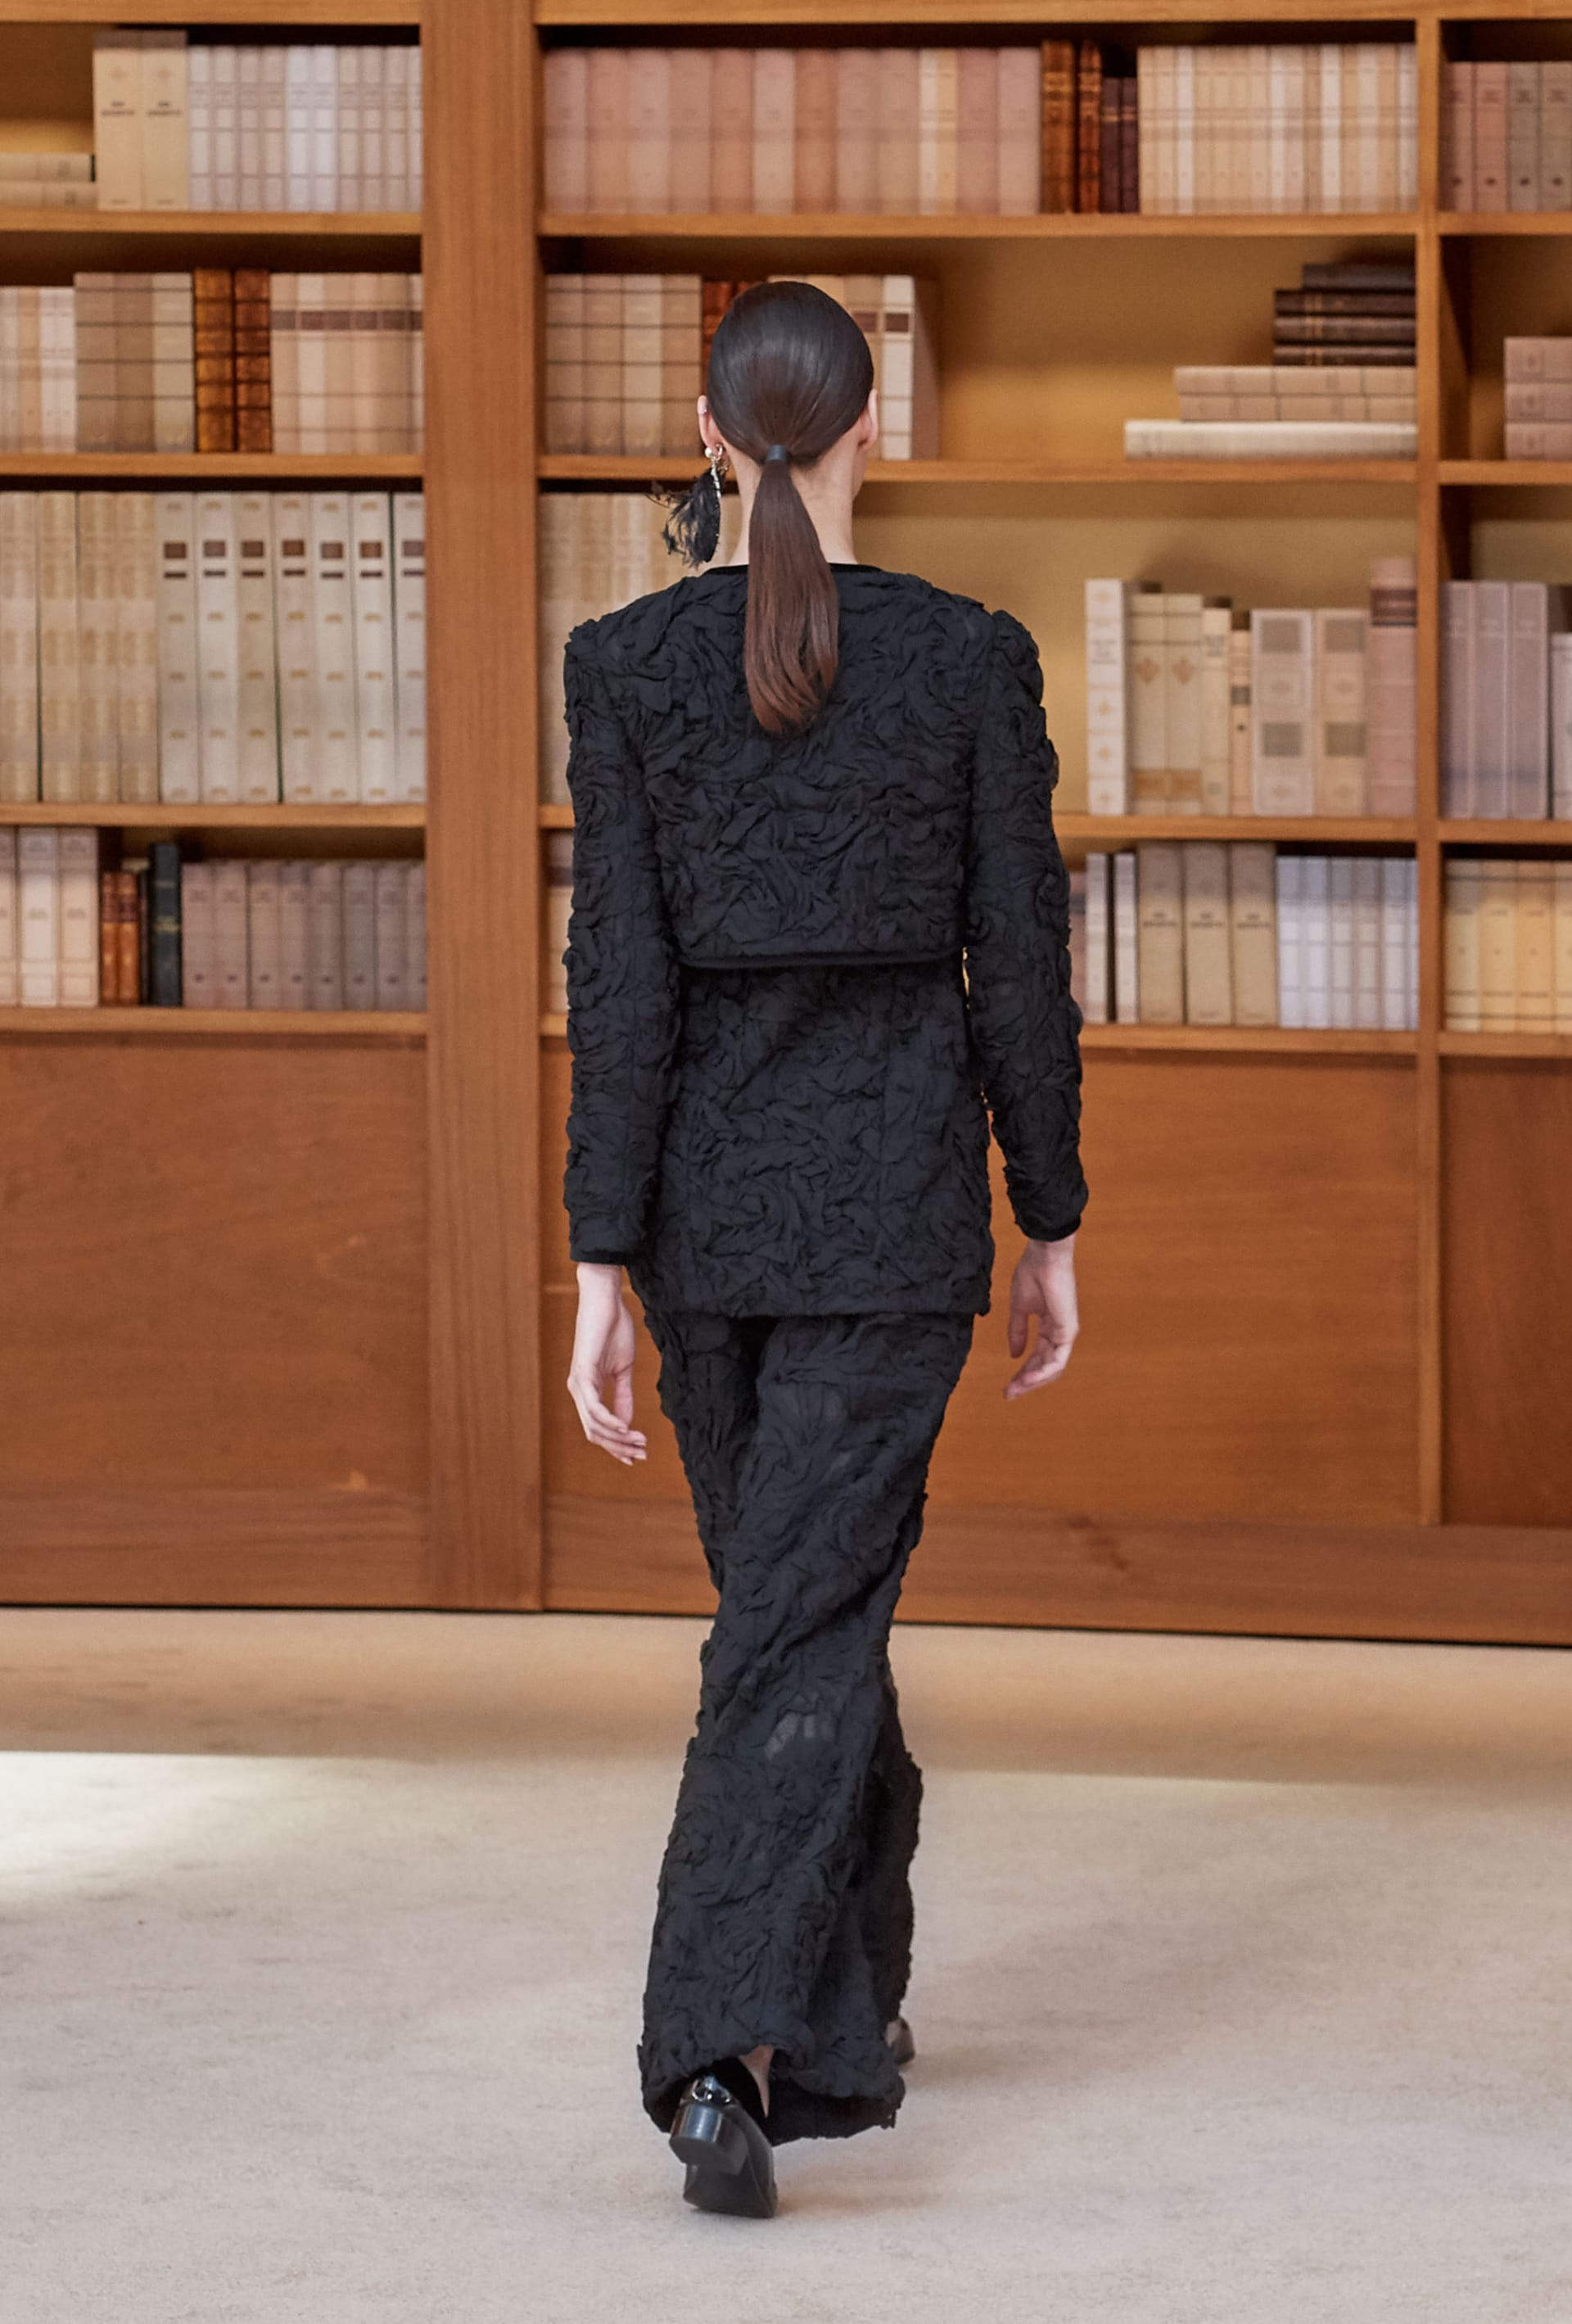 View 3 - Look 31 - Fall-Winter 2019/20 Haute-Couture - see full sized version